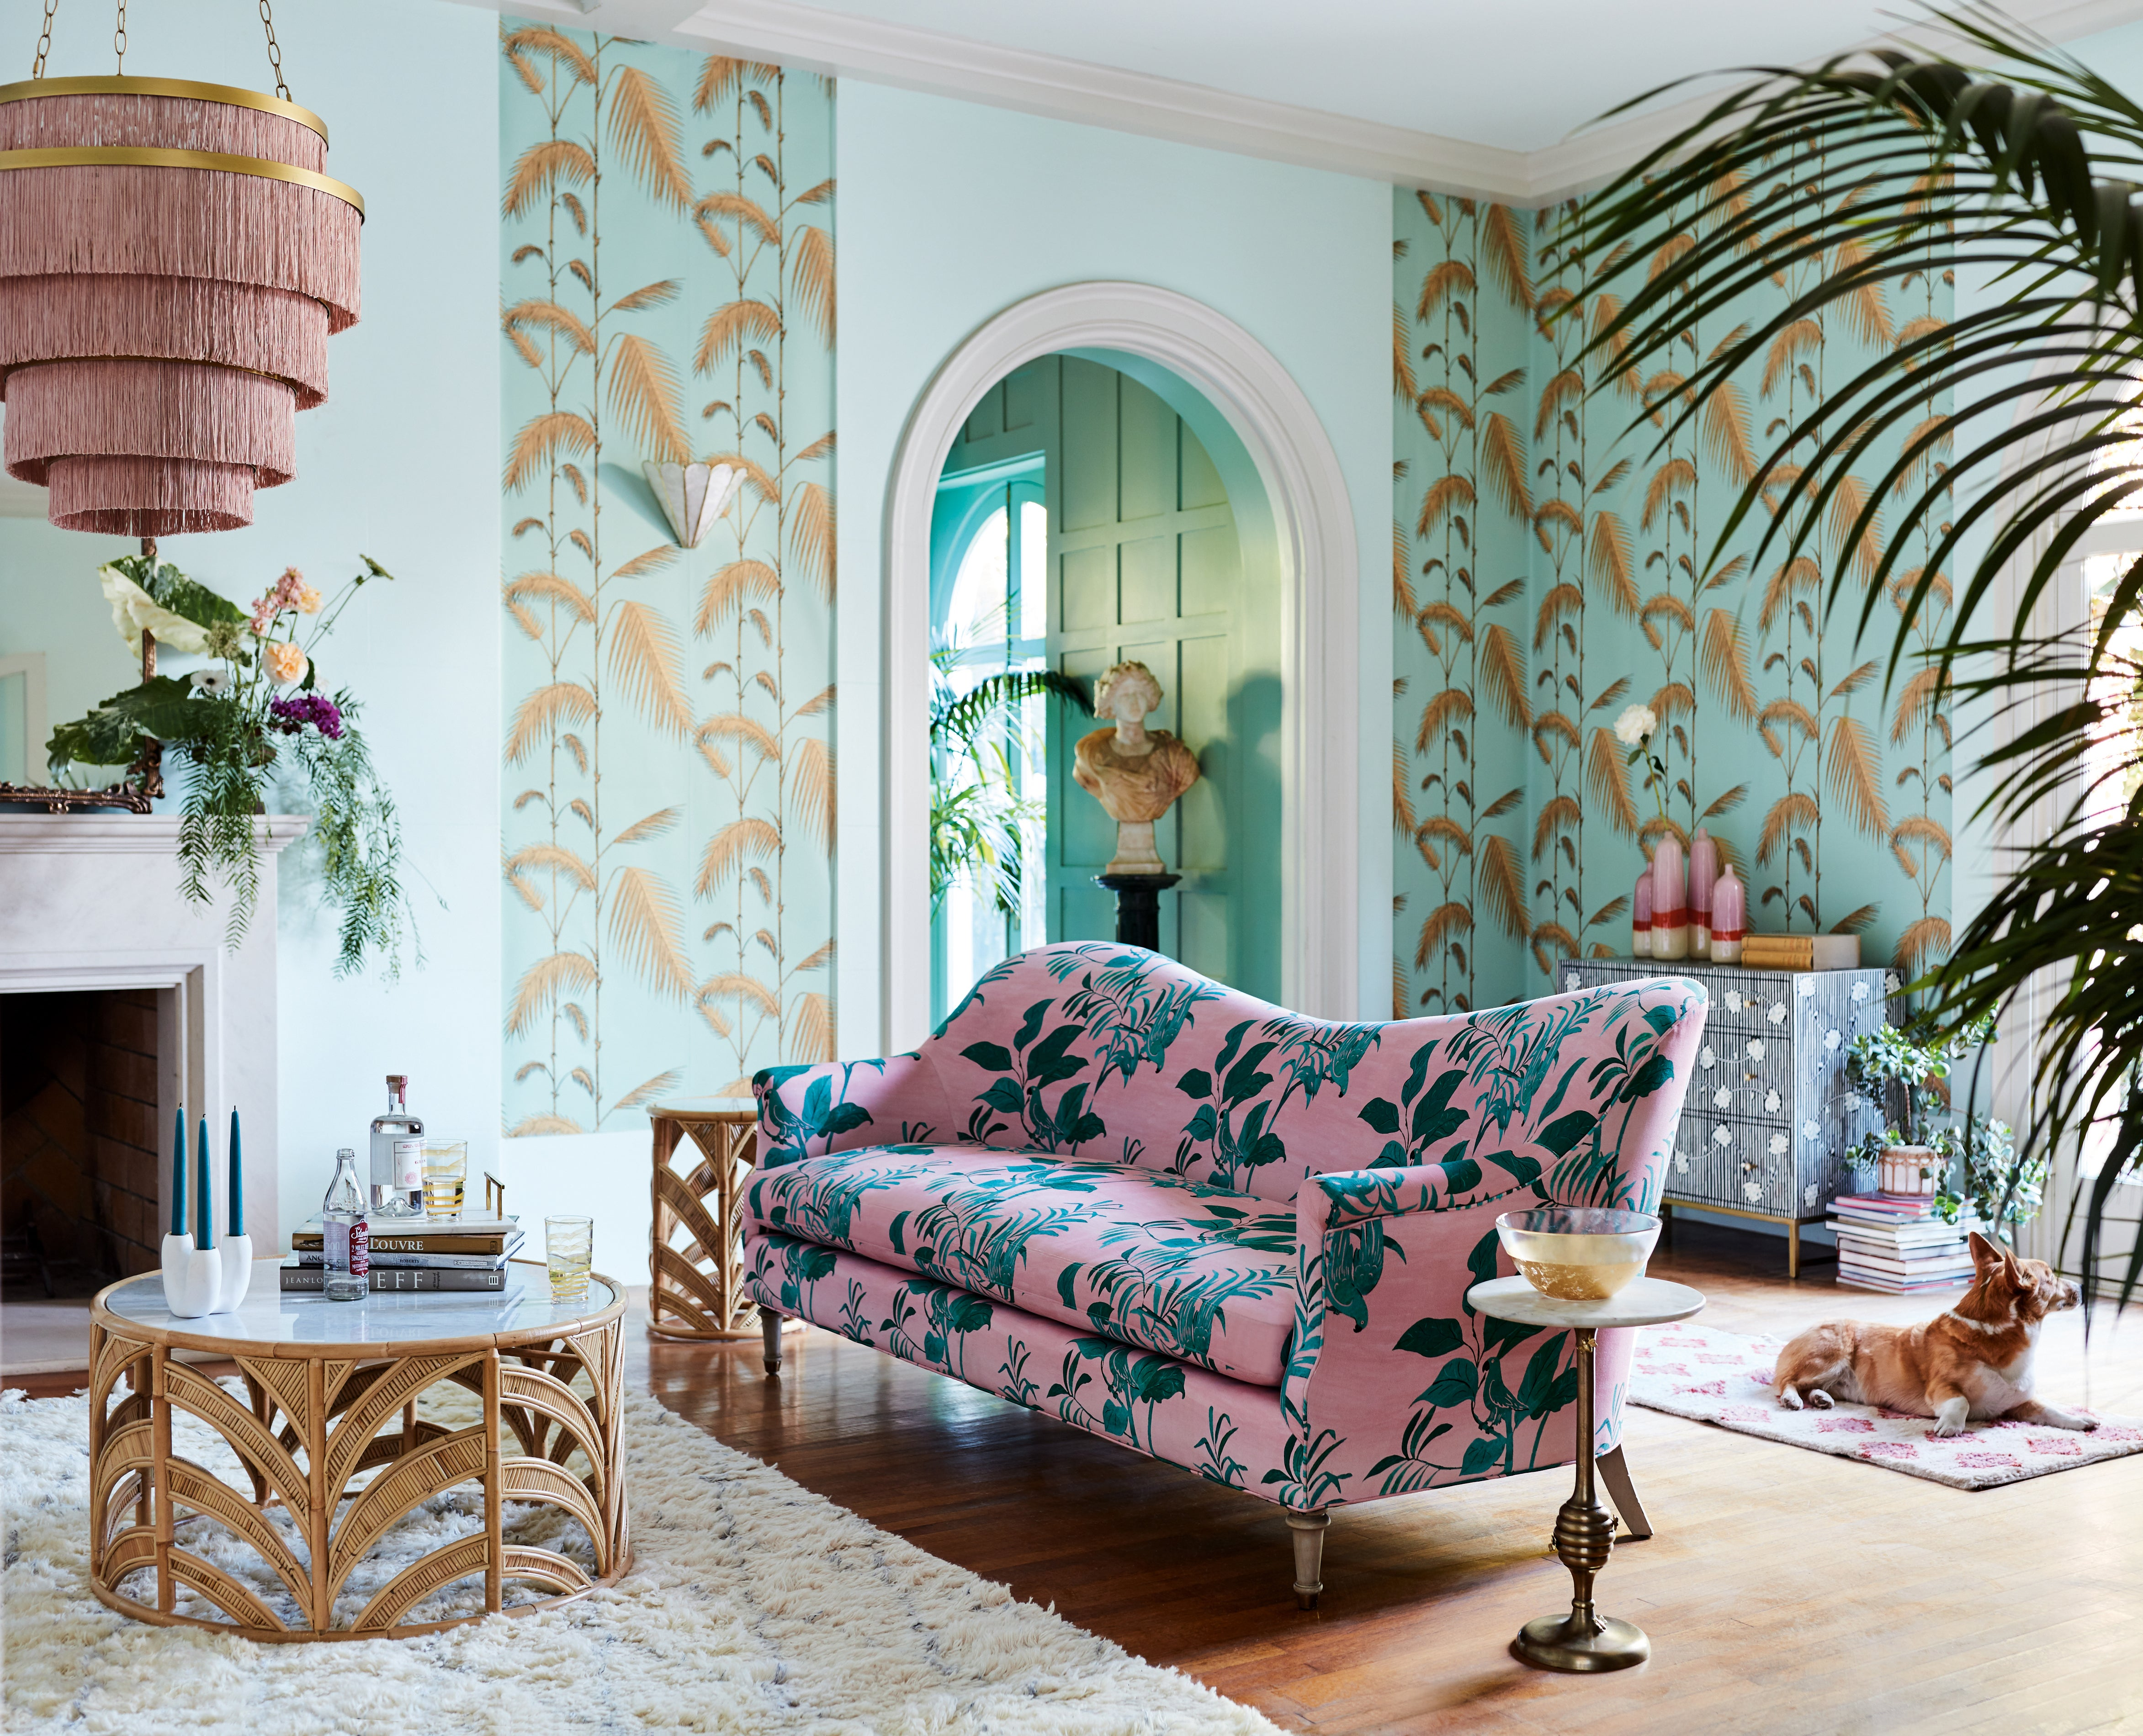 Anthropologie Paule Marrot Exclusive Capsule Collection